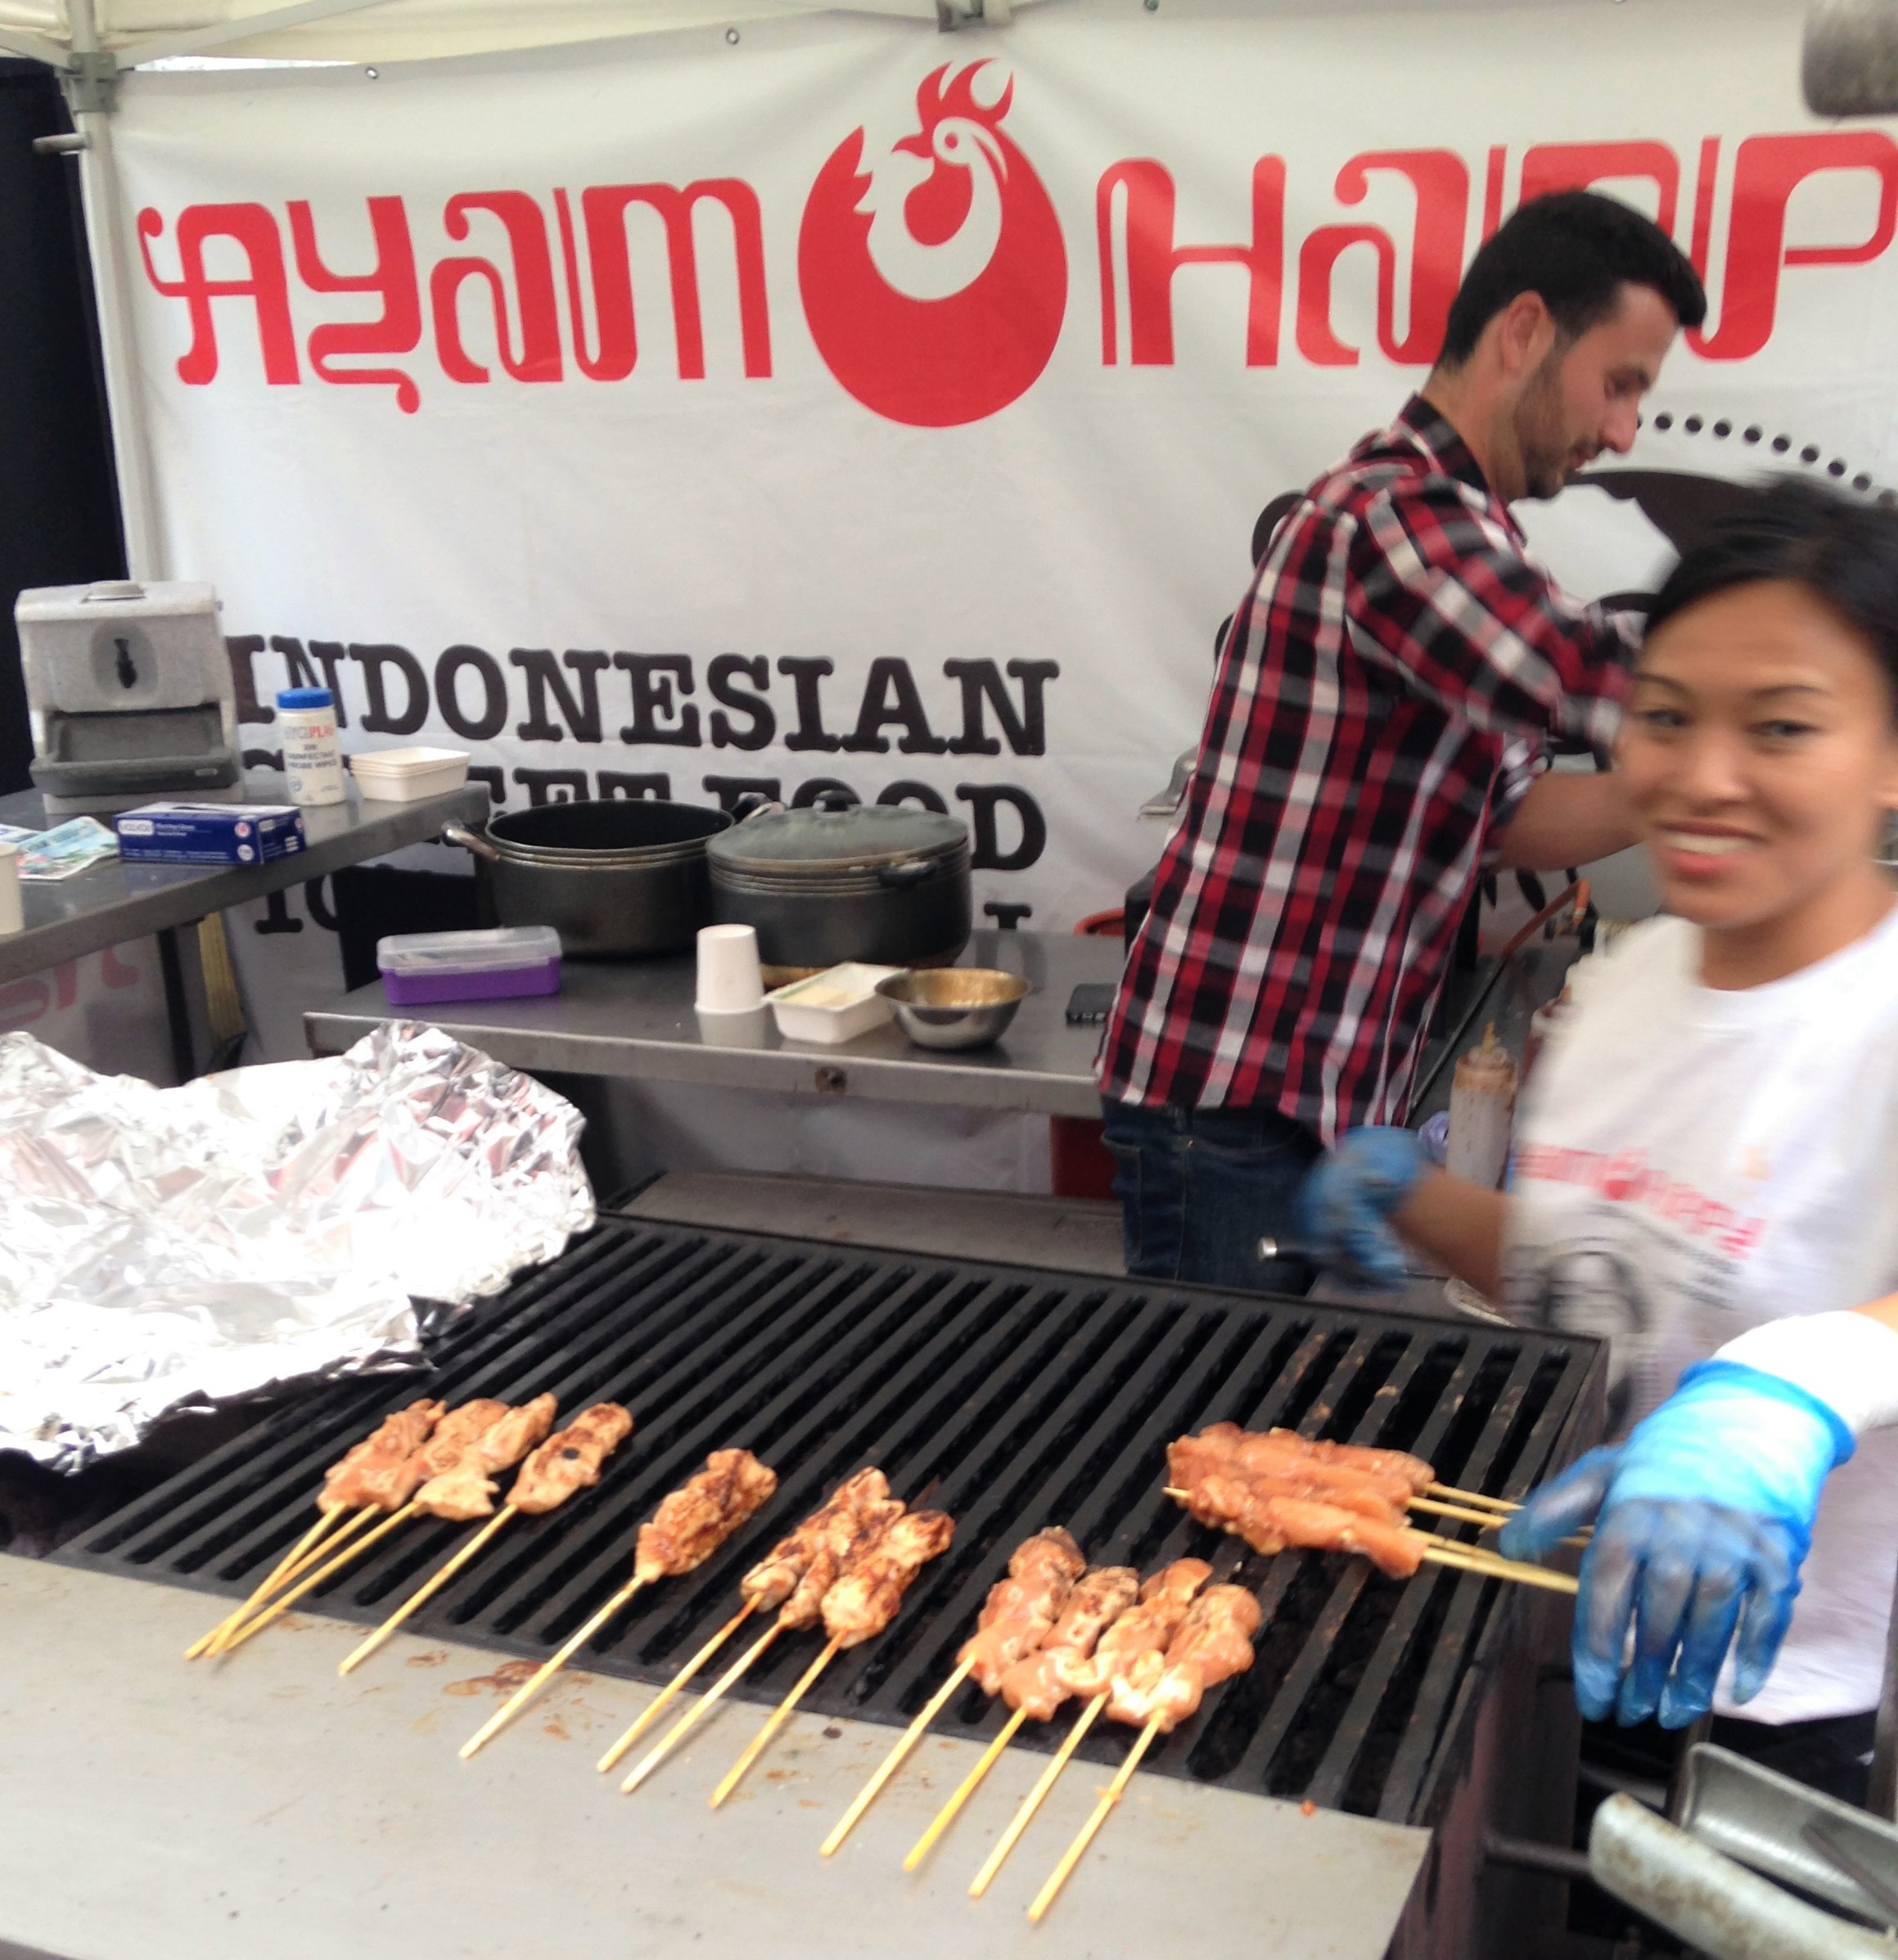 Ayam Happy Indonesian Street Food at Vauxhall Street Food Market - kenningtonrunoff.com